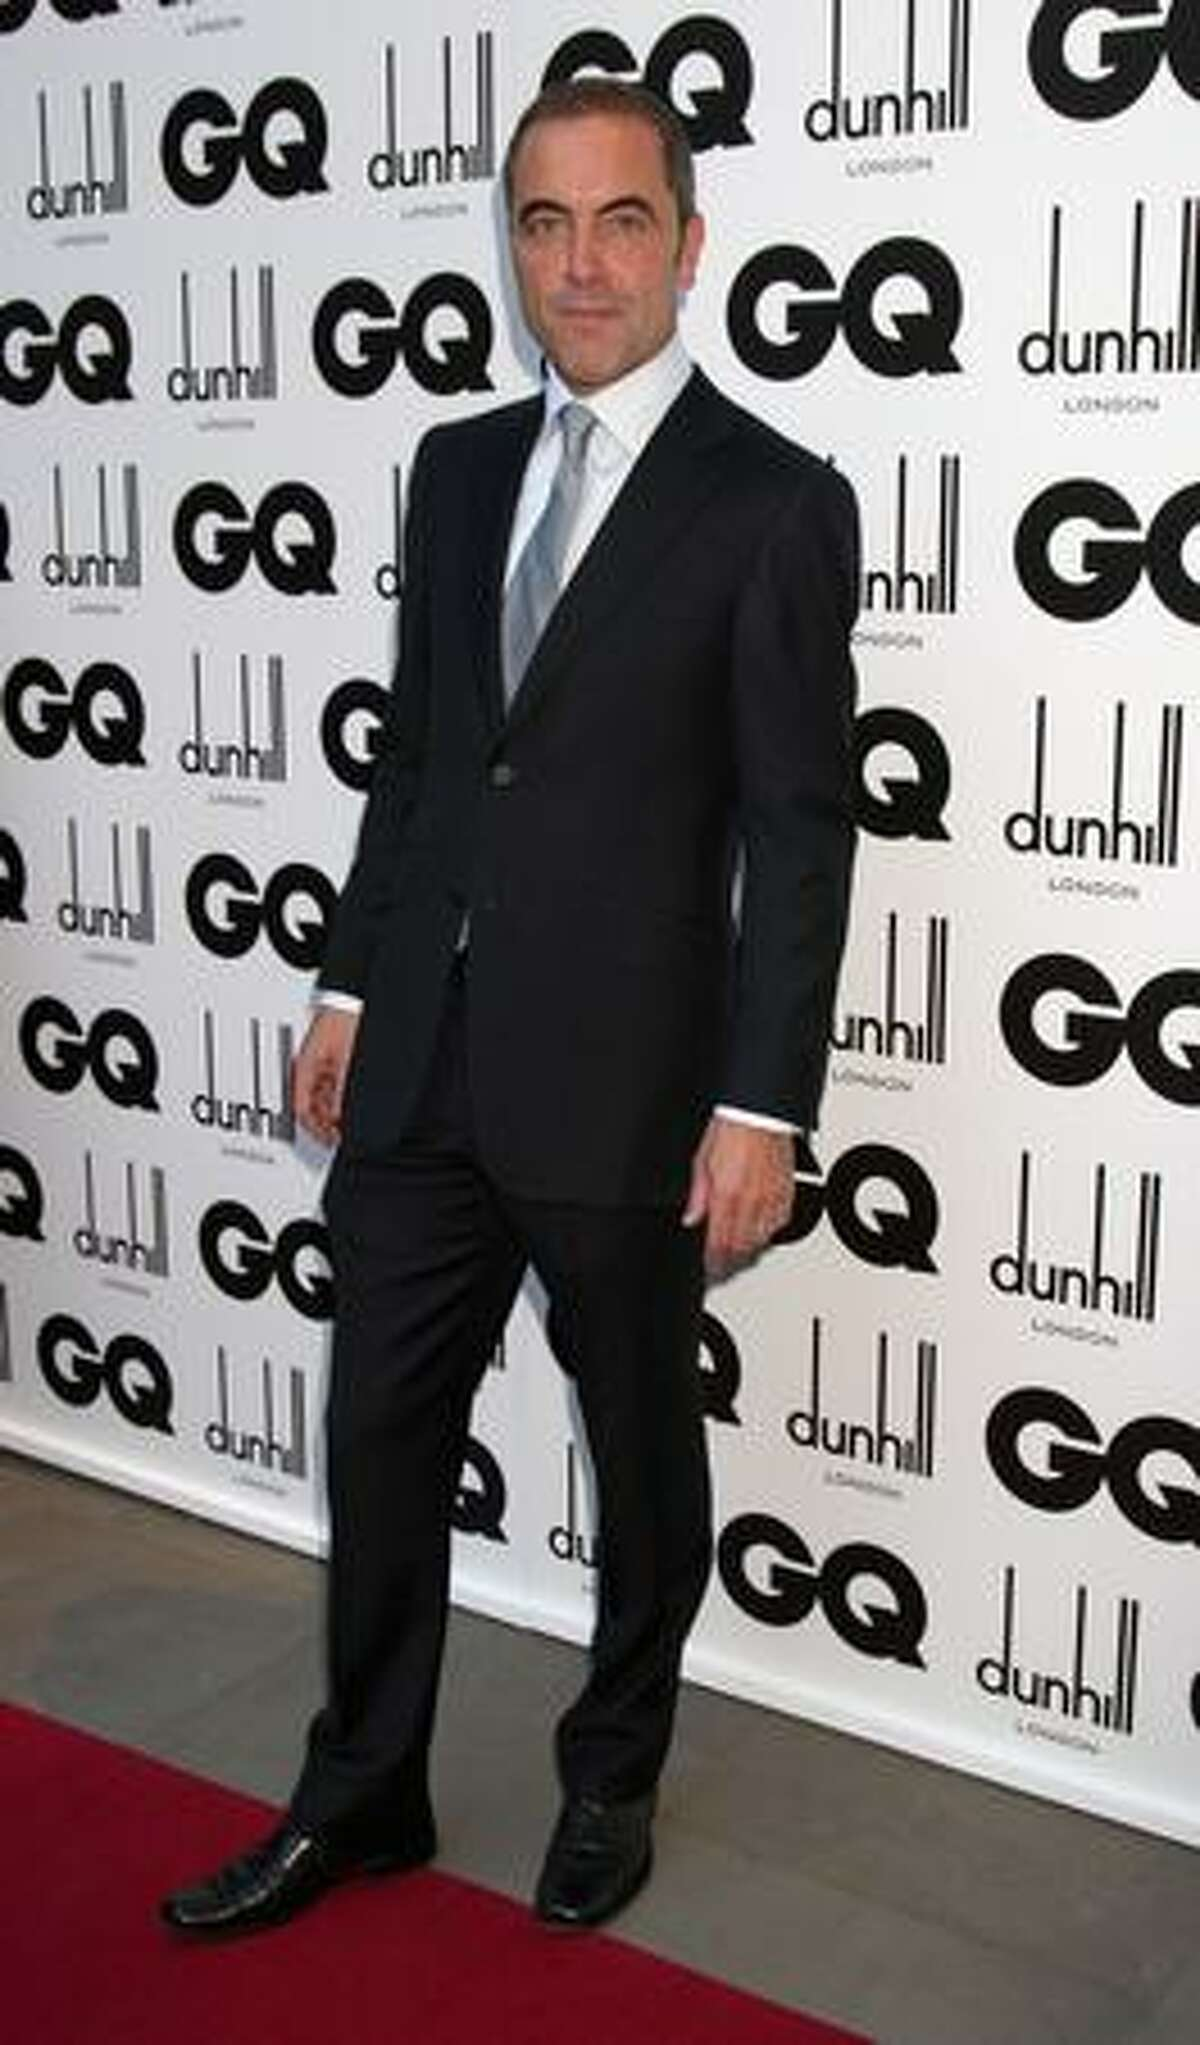 Actor James Nesbitt arrives for the 2009 GQ Men Of The Year Awards at The Royal Opera House in London, England.